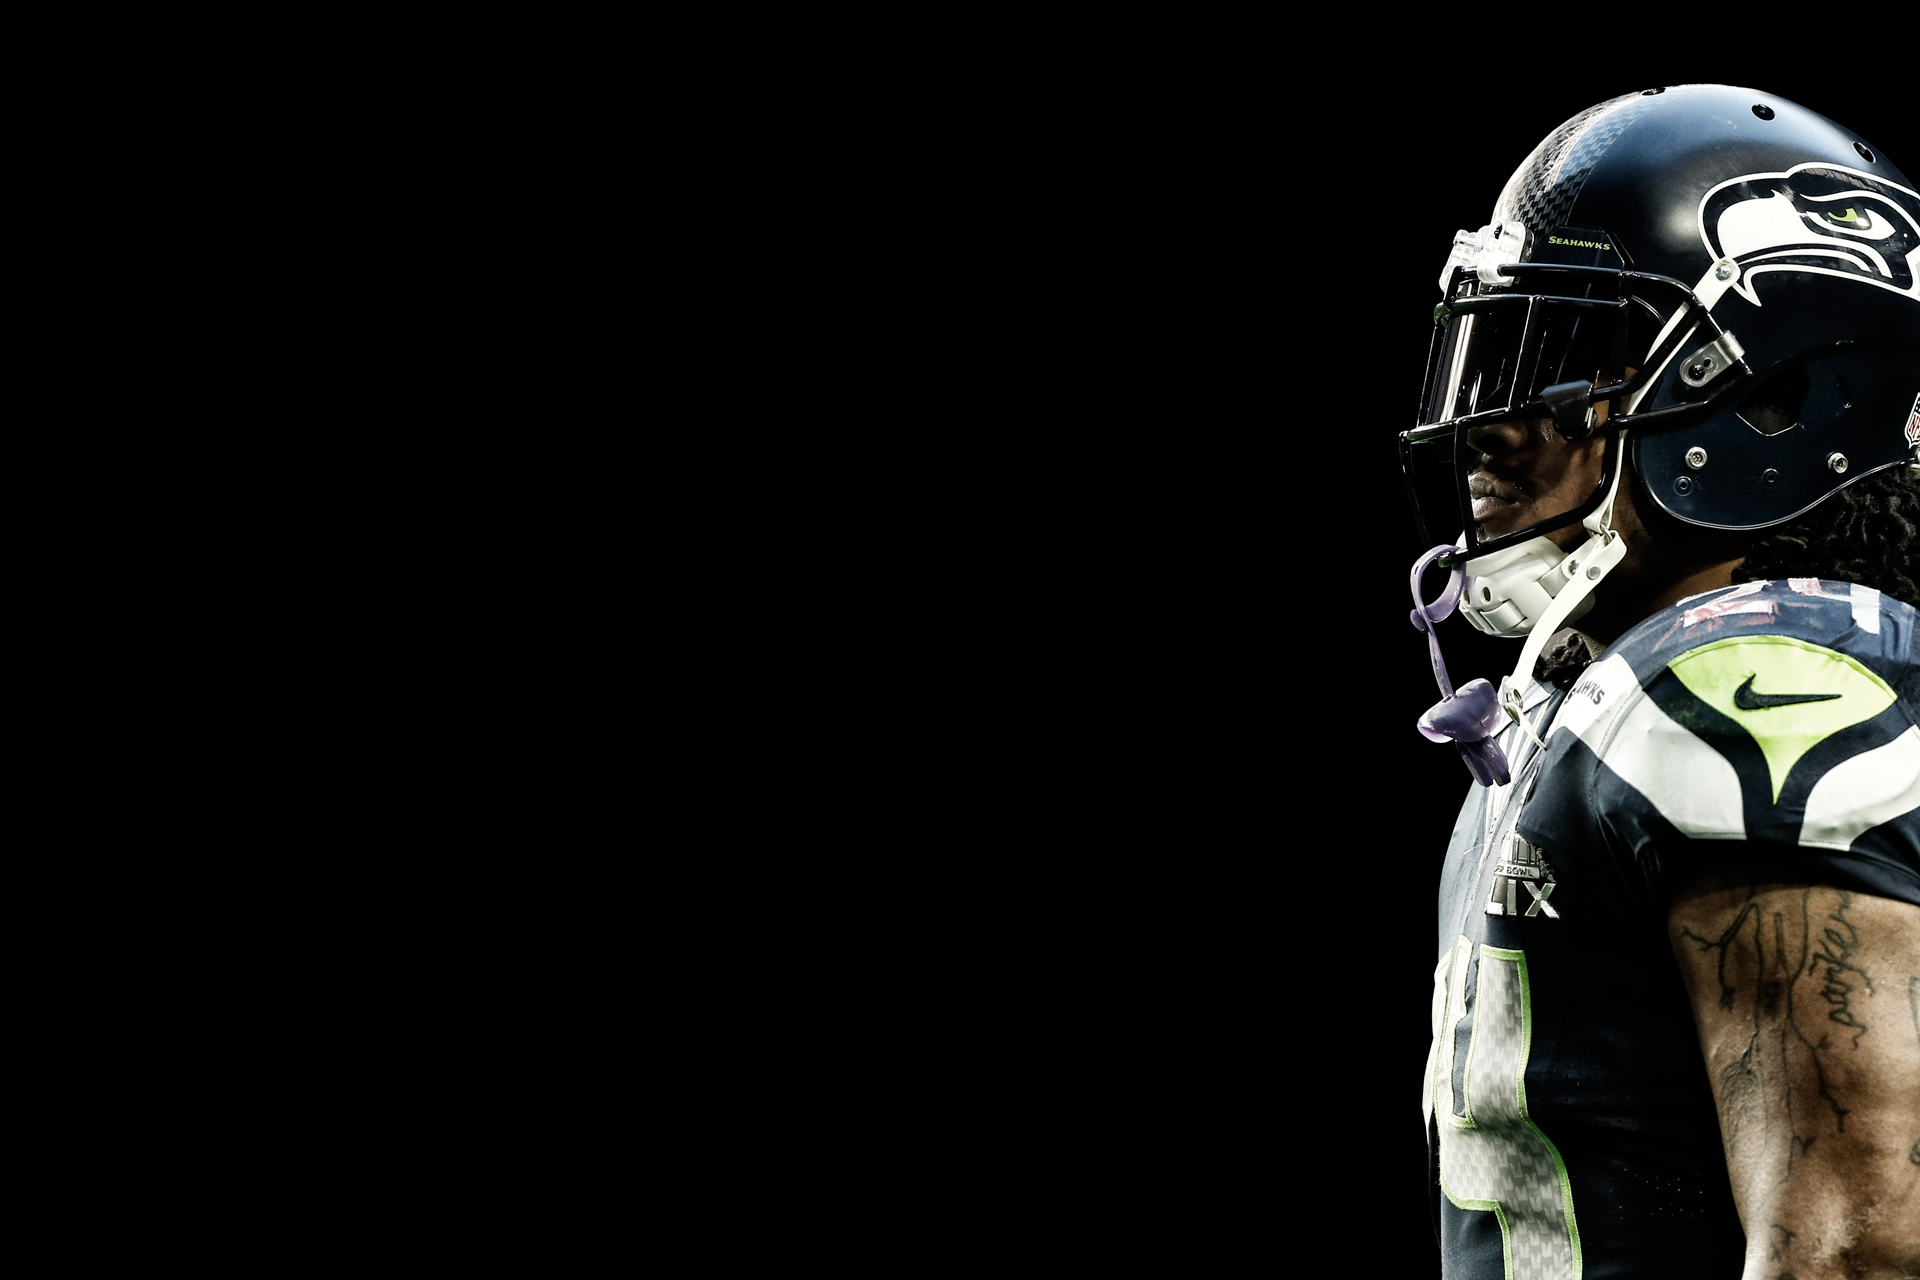 Marshawn Lynch Minimalist Desktop Wallpaper (1920x1280) : Seahawks